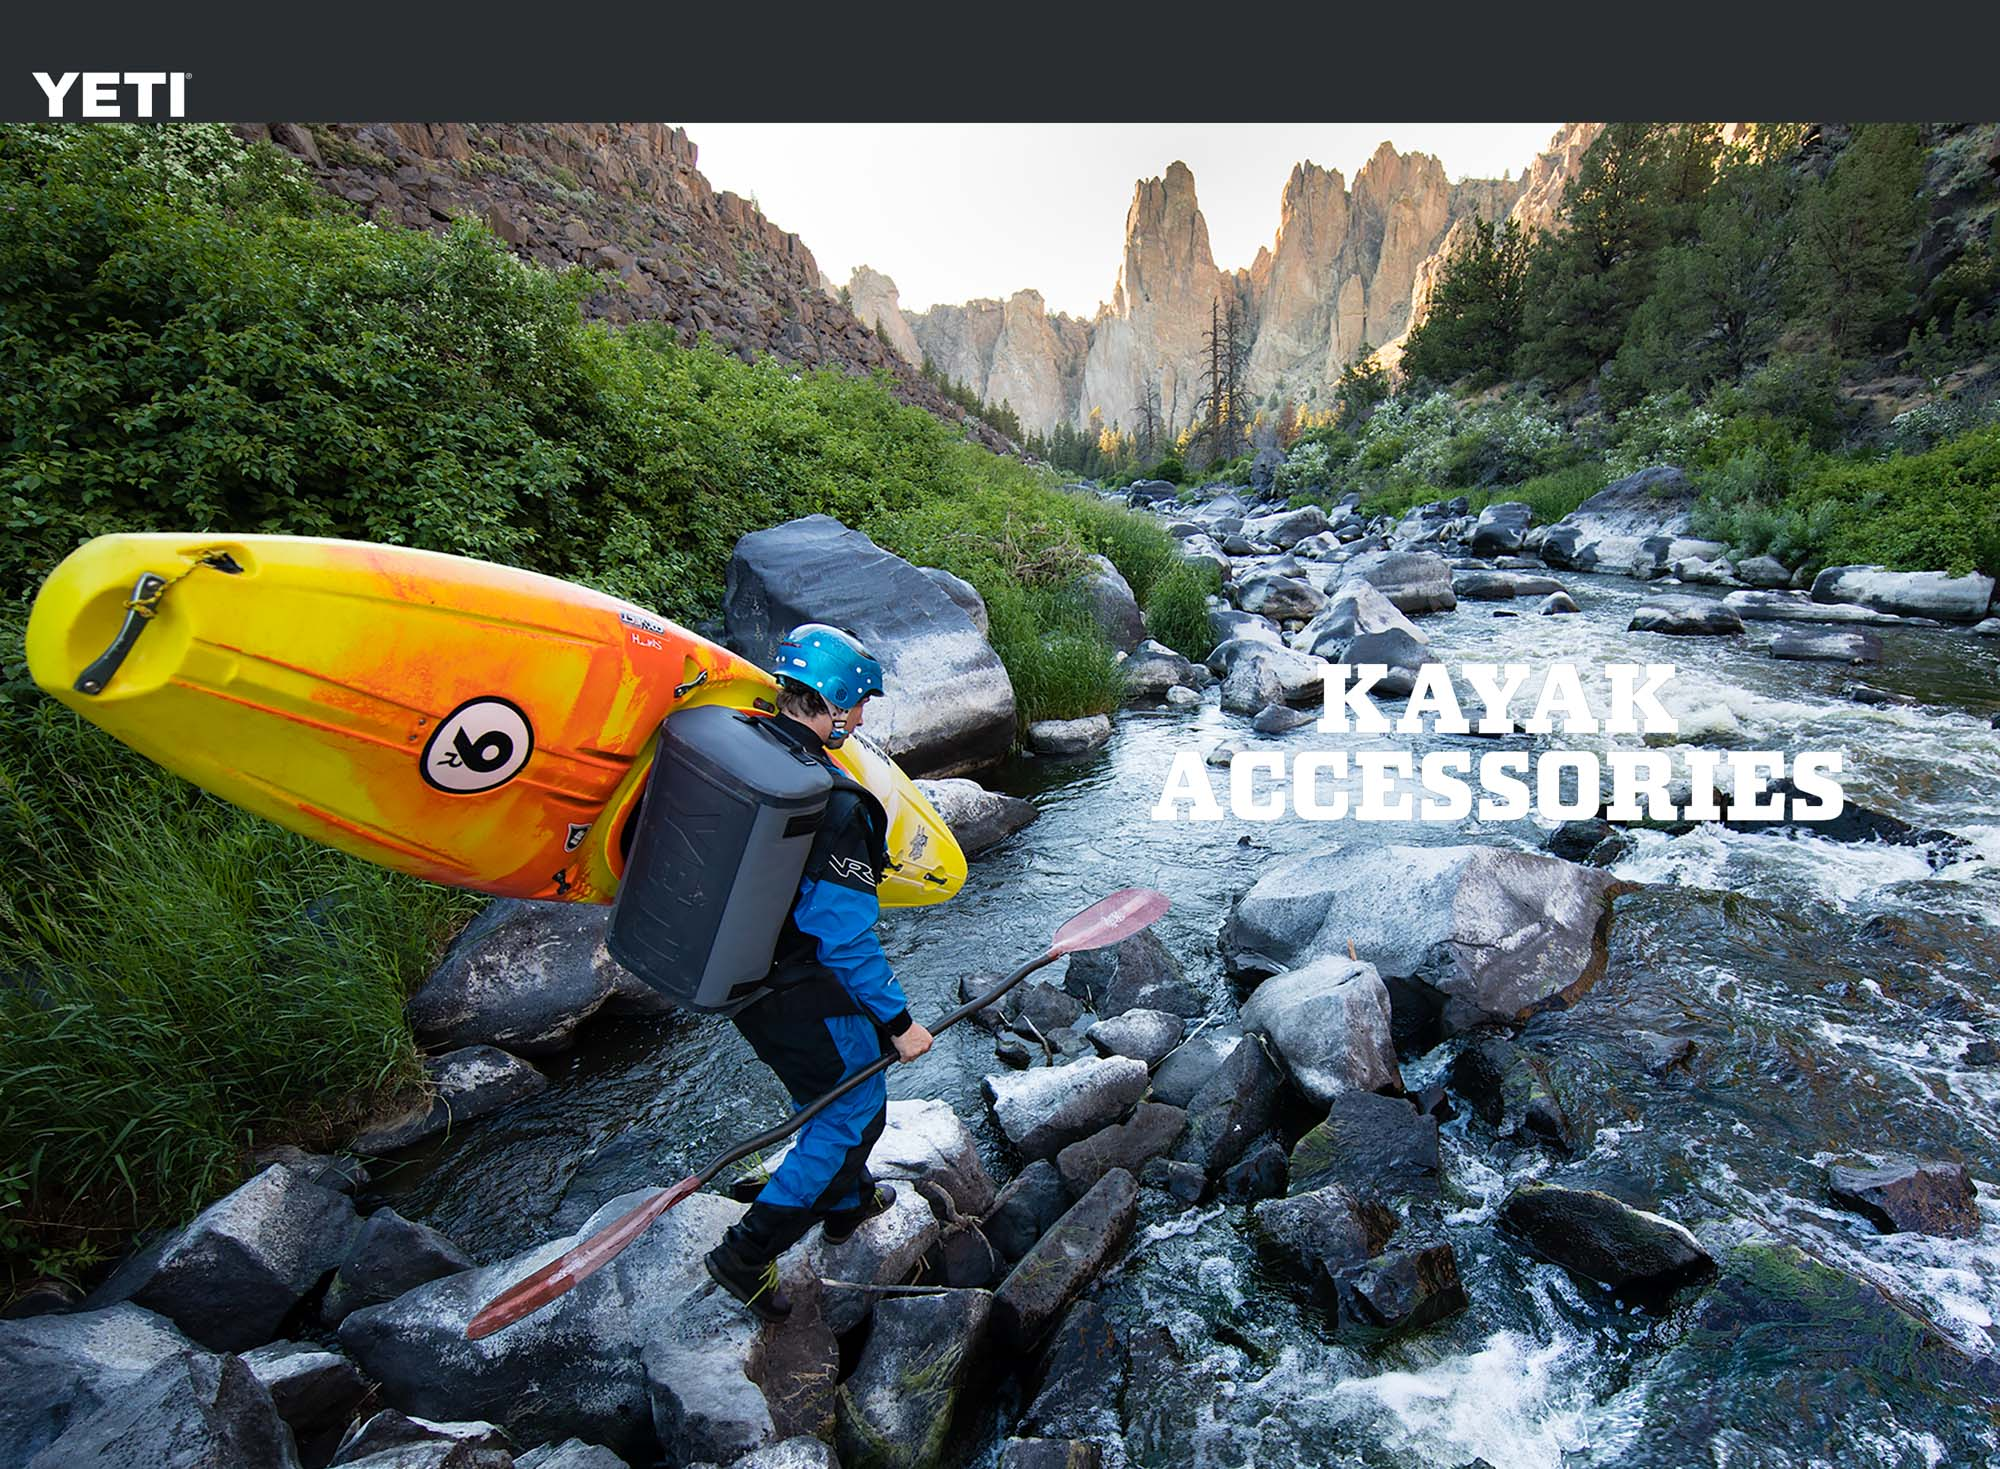 yeti-coolers-photographer-outdoor-lifestyle-kayak-oregon-washington